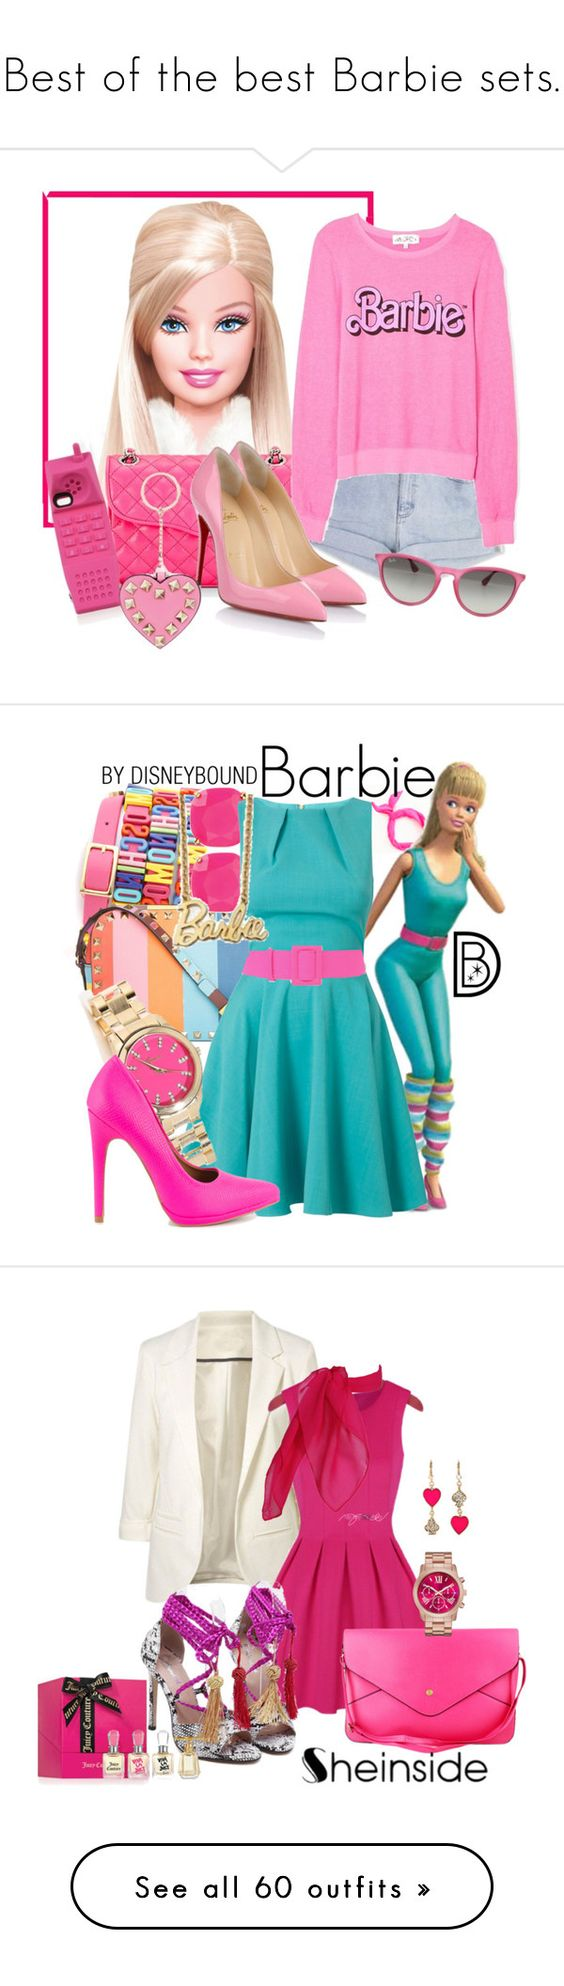 """""""Best of the best Barbie sets."""" by crazygirlandproud ❤ liked on Polyvore featuring Les Petites..., Rebecca Minkoff, Wildfox, Christian Louboutin, Moschino, Valentino, Ray-Ban, ban.do, Kate Spade and Closet"""